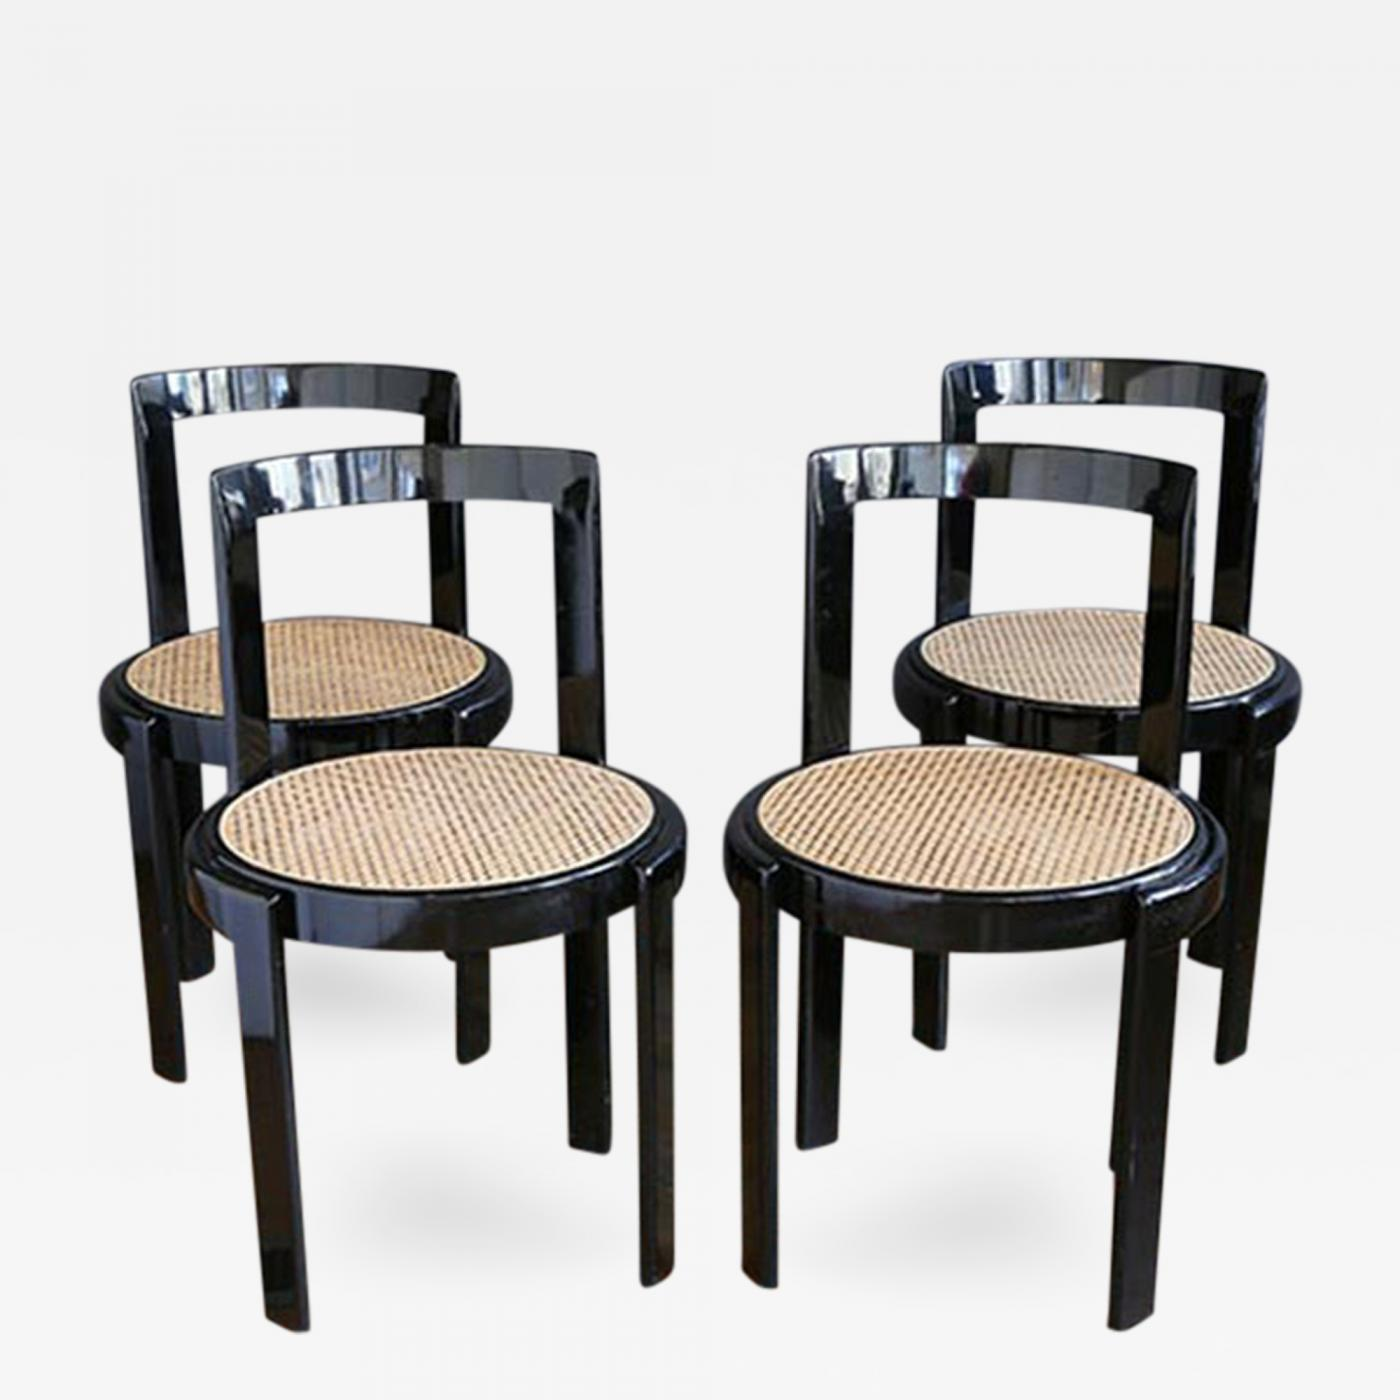 Thonet Thonet Black Lacquer & Cane Dining Chairs